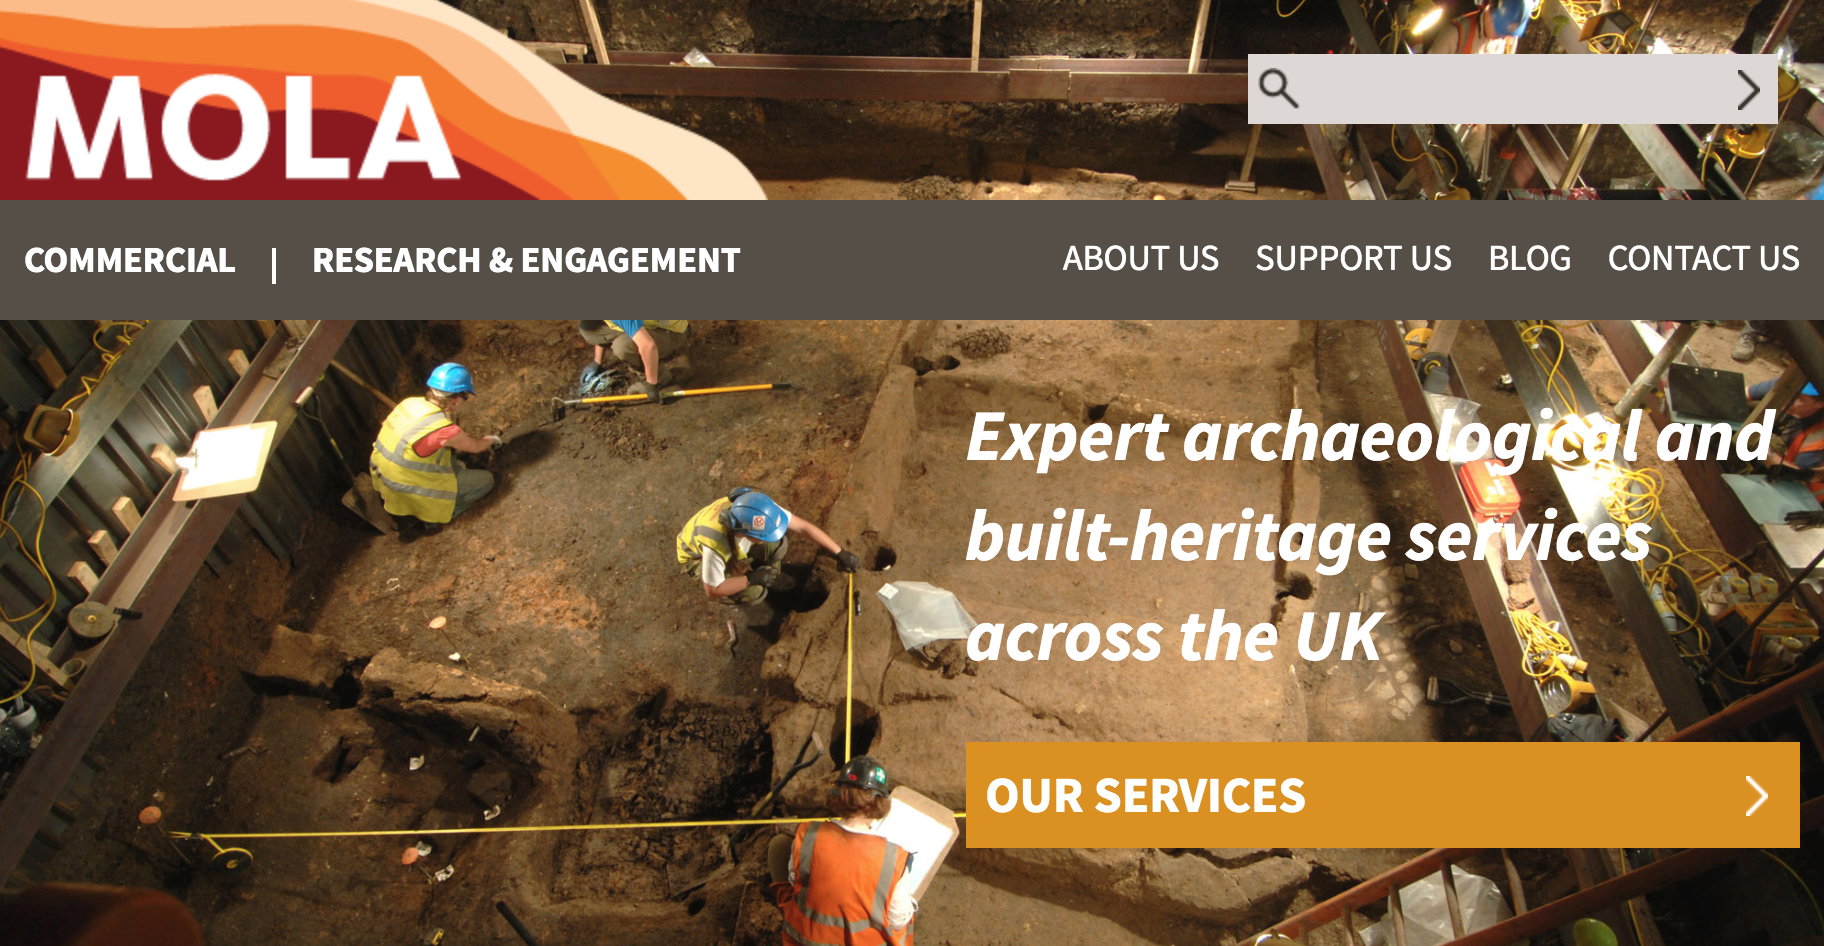 Screenshot of the top banner from the MOLA website, depicting archaeological specialists excavating an unidentified site.